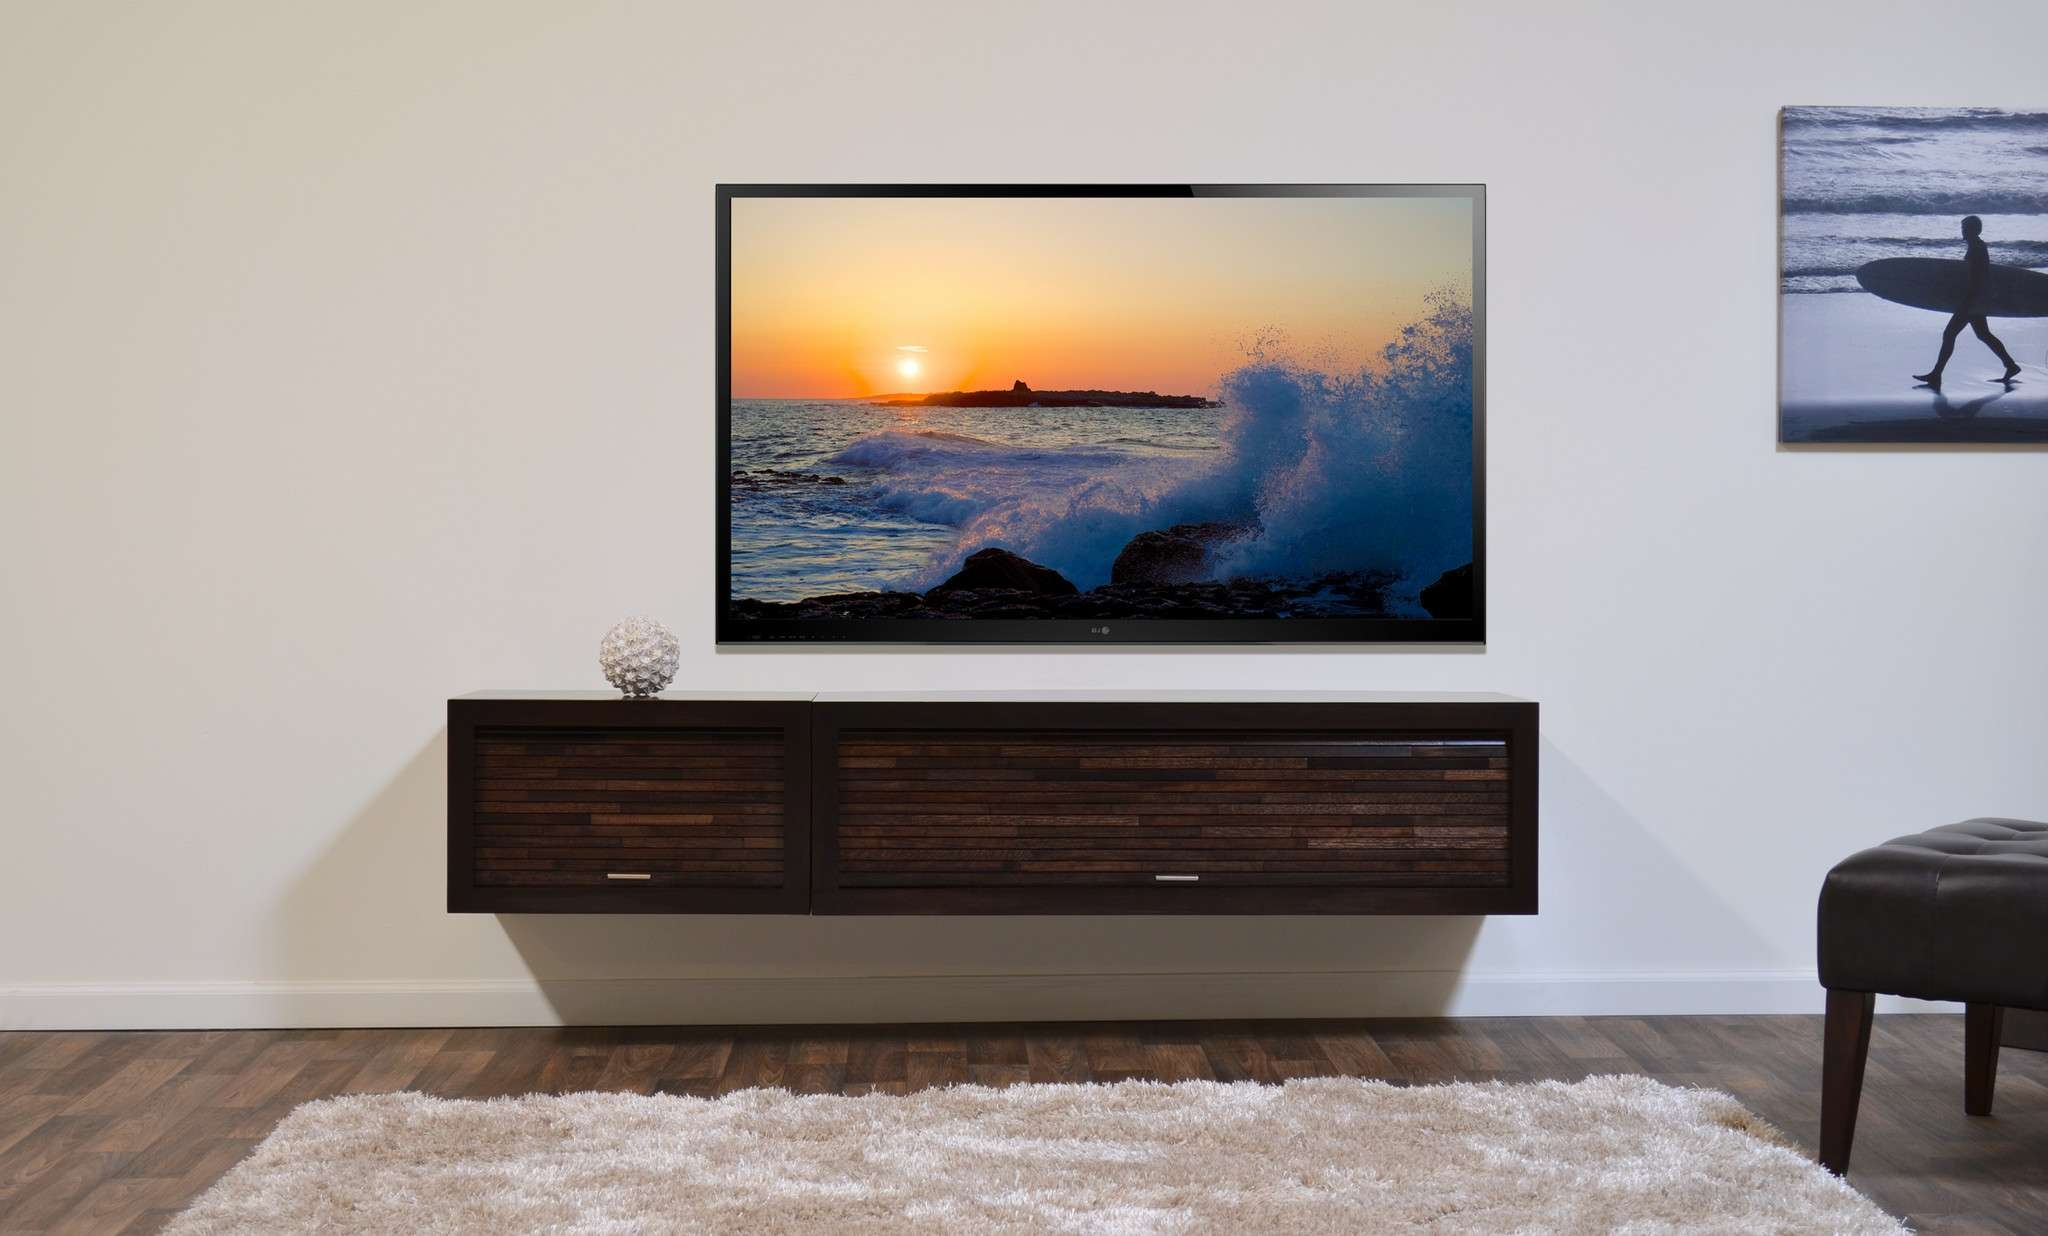 Rectangular Led Tv On Over Brown Wooden Cabinet On White Wall Inside White Wall Mounted Tv Stands (View 9 of 15)